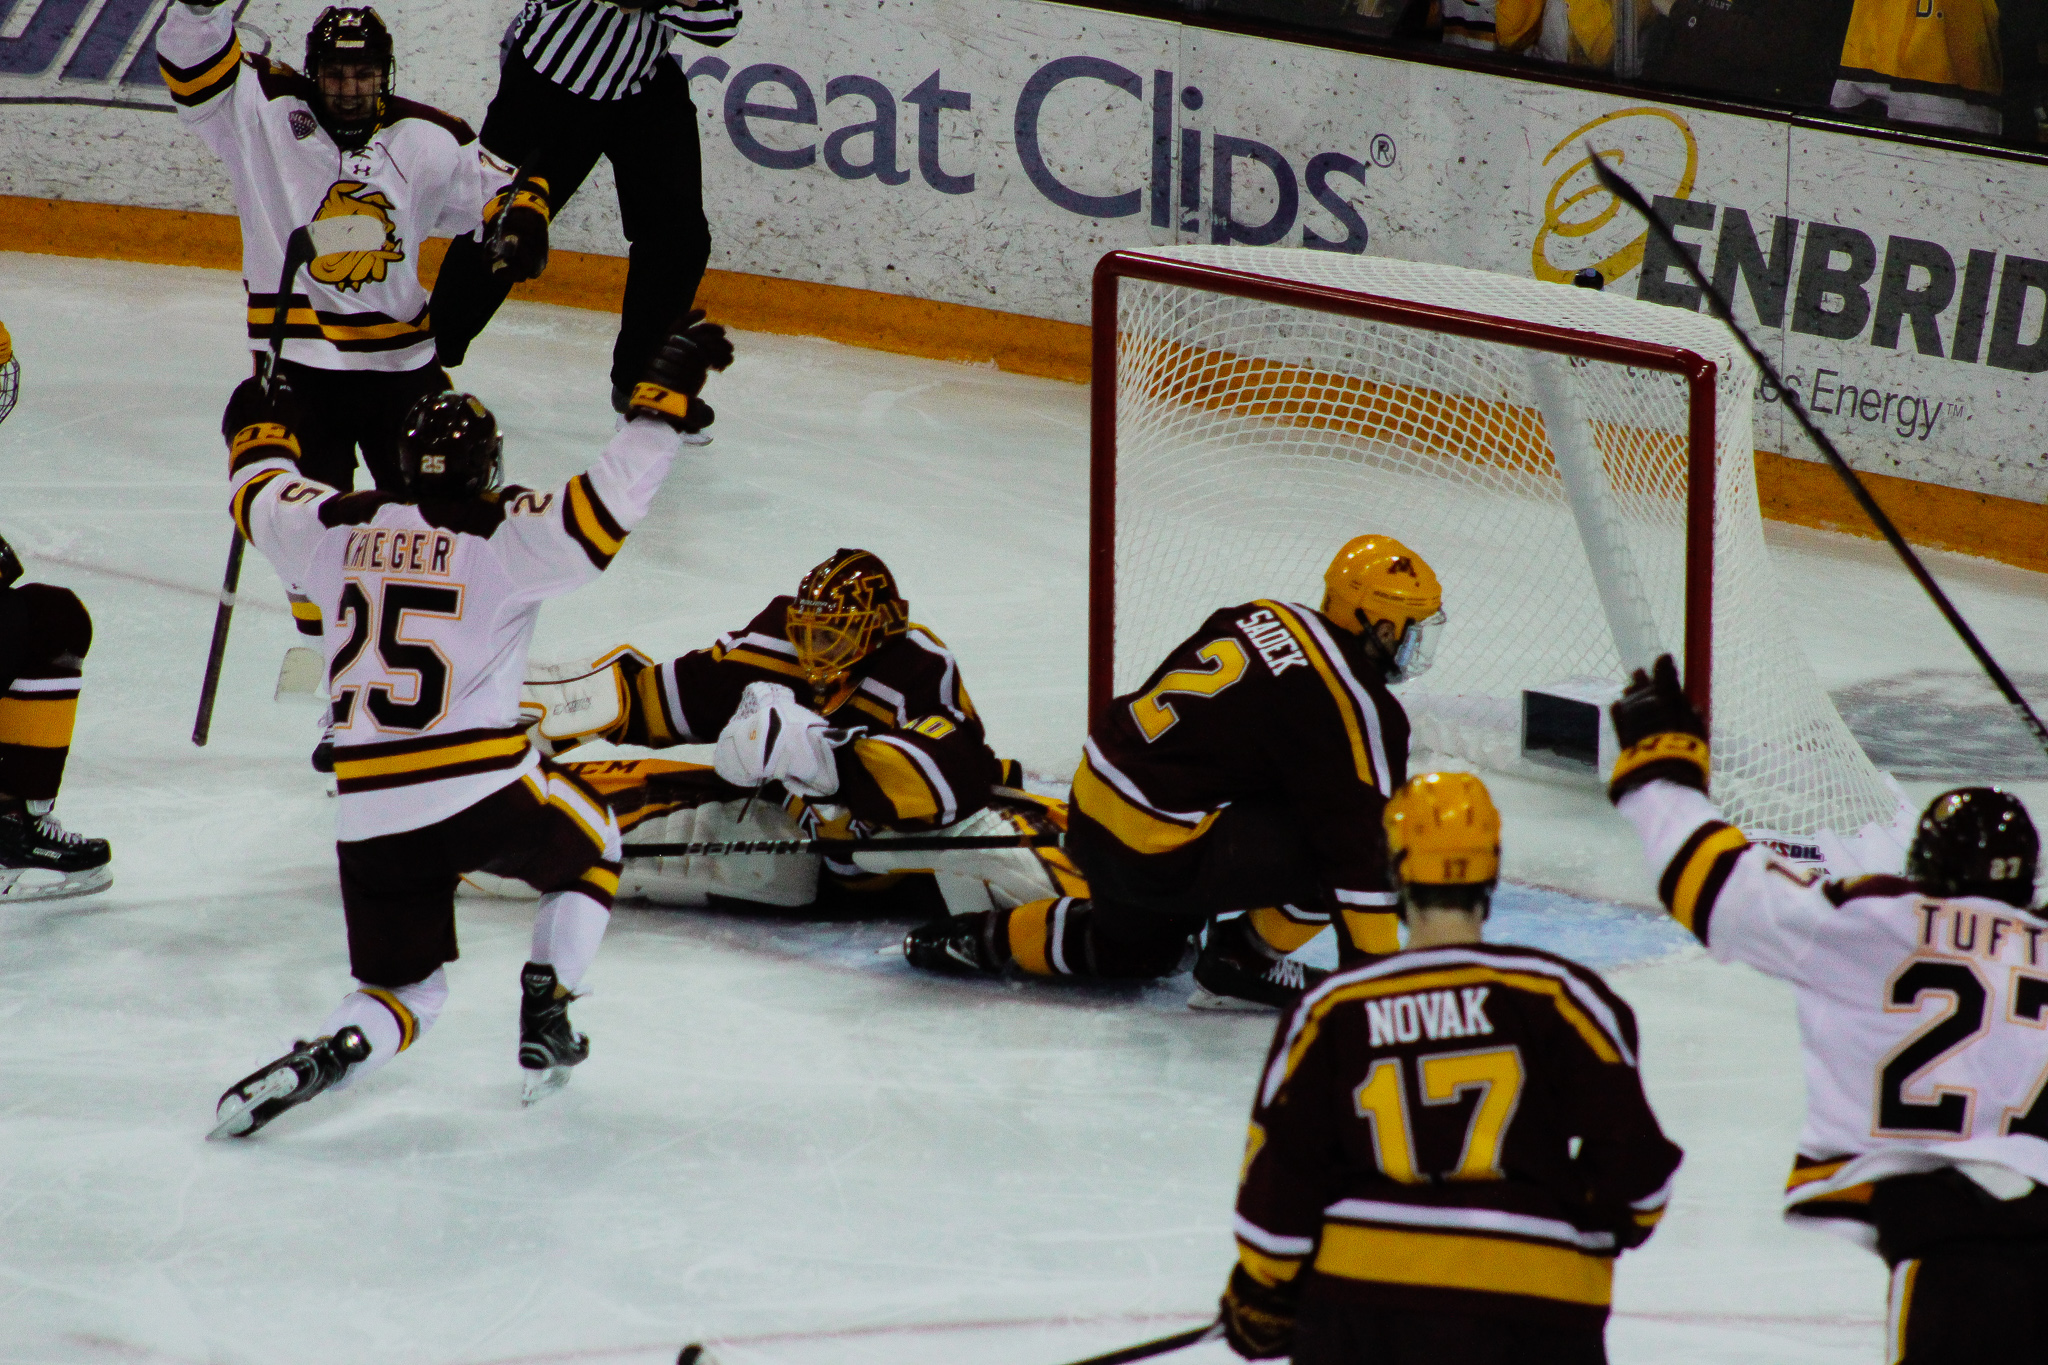 Peter Krieger (25) tied the game at one with his power play goal early in the third period. Photo by: Morgan Pint.